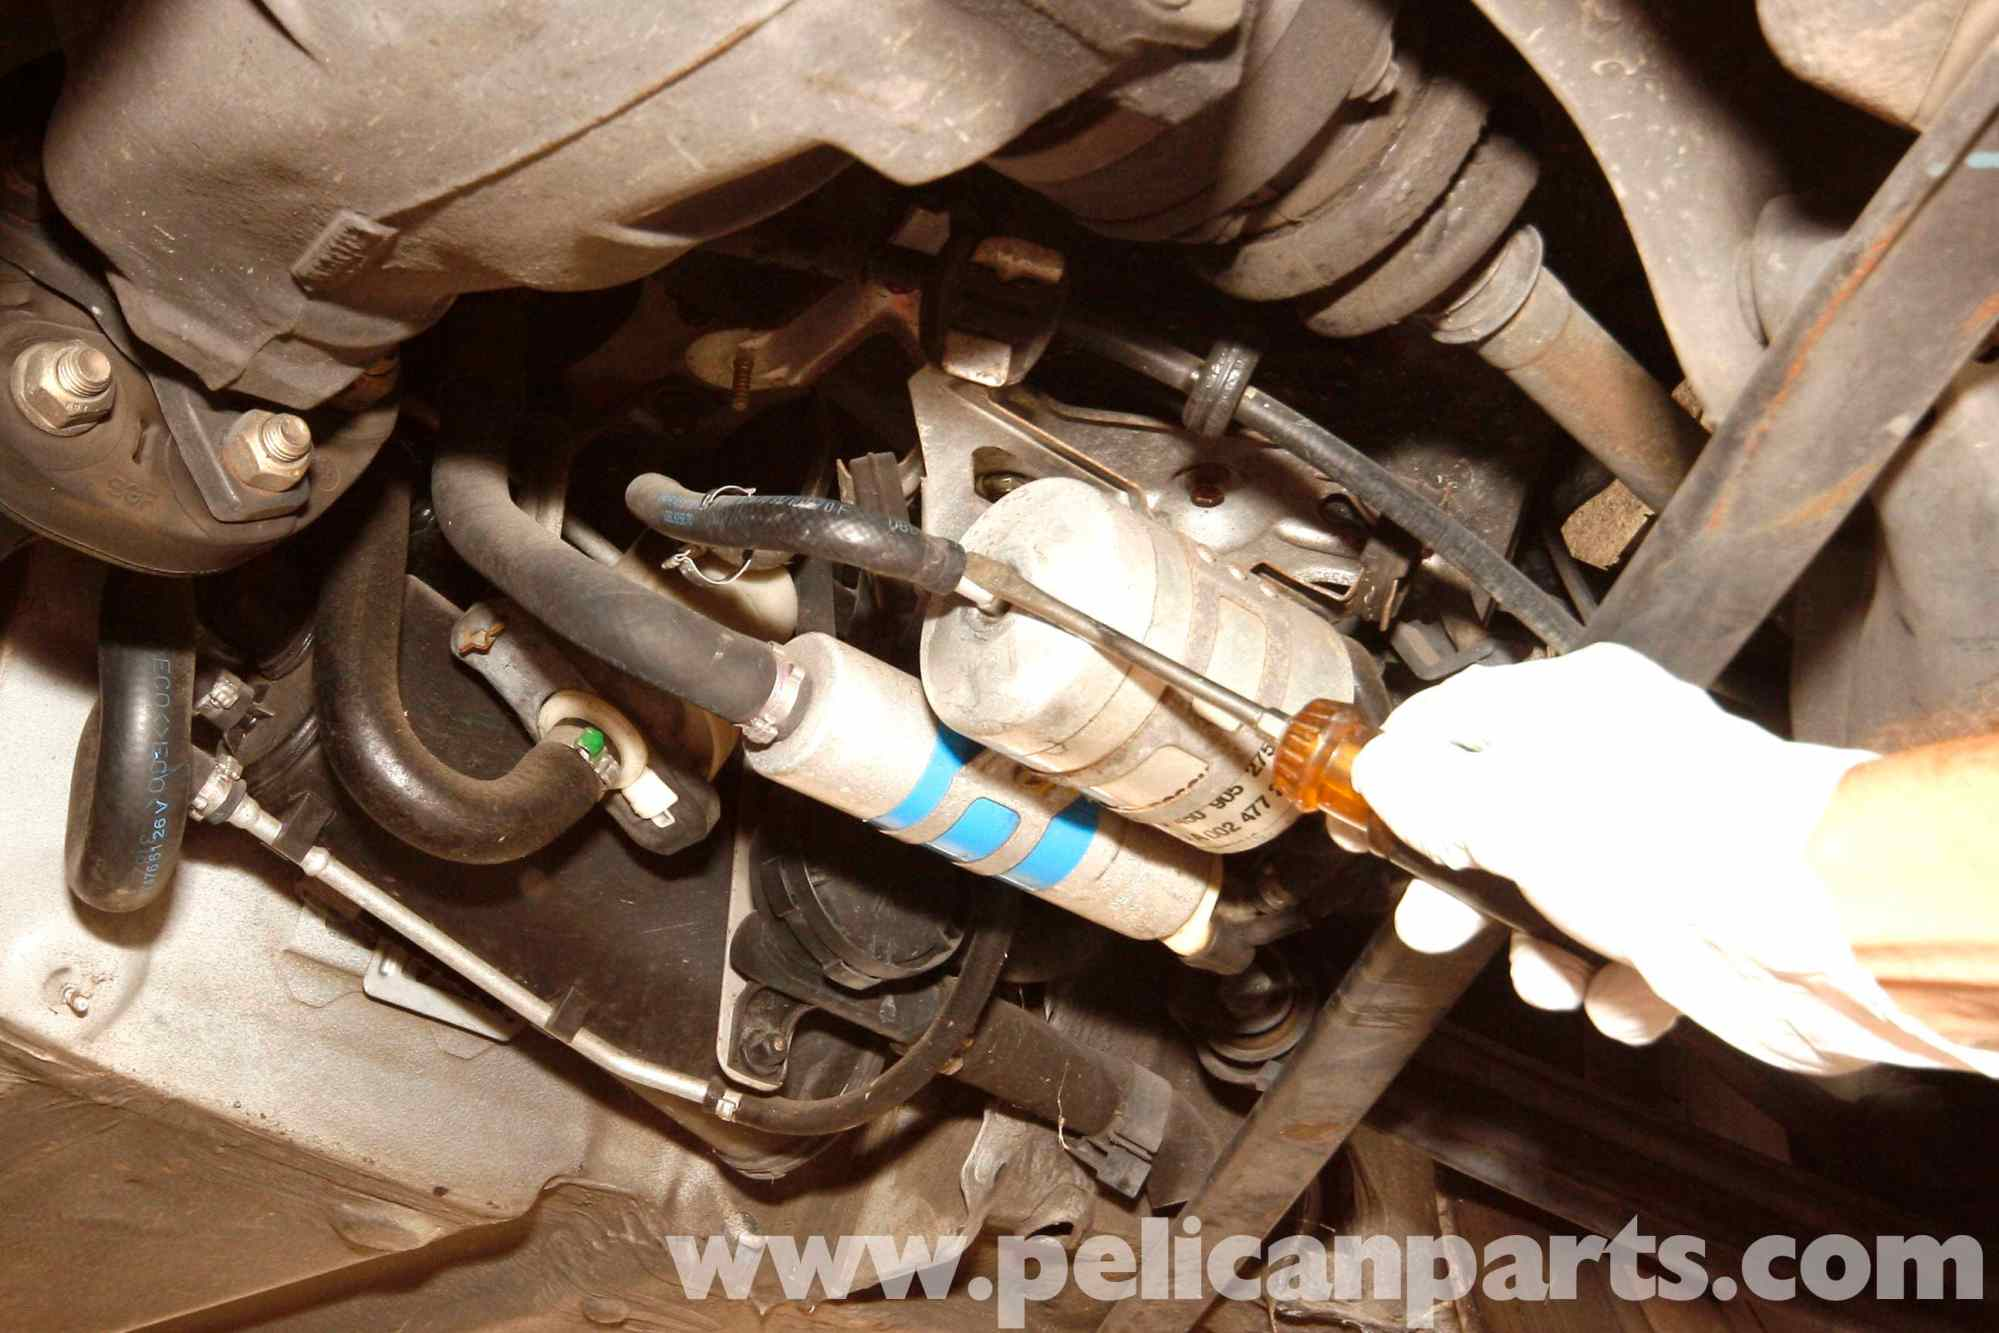 hight resolution of mercedes benz slk 230 fuel filter replacement 1998 2004 pelican saab 9 3 fuel filter pelican get free image about wiring diagram